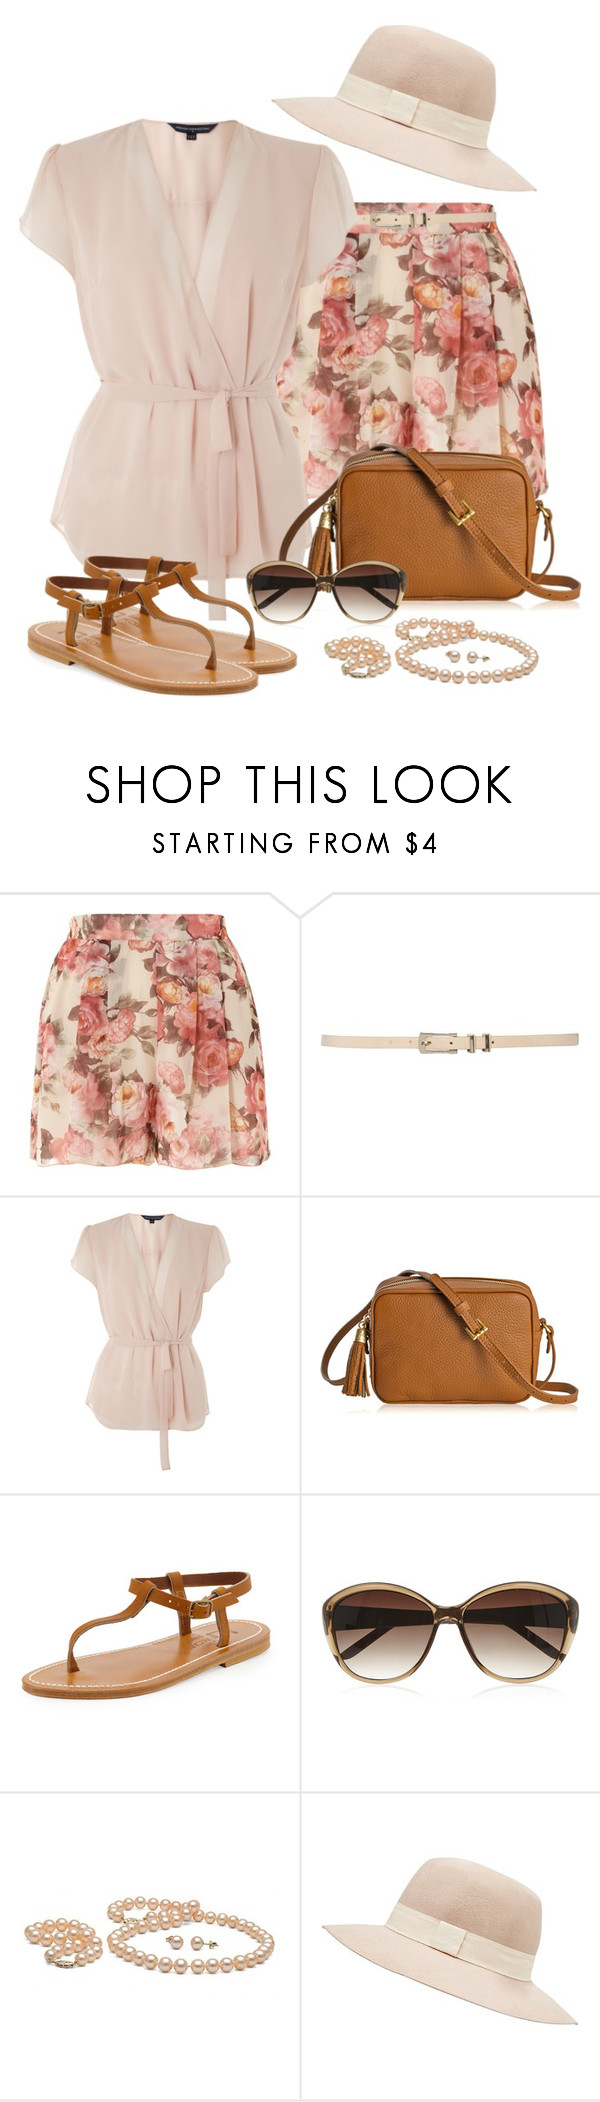 """Floral print shorts"" by snickersmother ❤ liked on Polyvore featuring Jane Norman, M&Co, French Connection, GiGi New York, RGB, K. Jacques, M&S and Witchery"